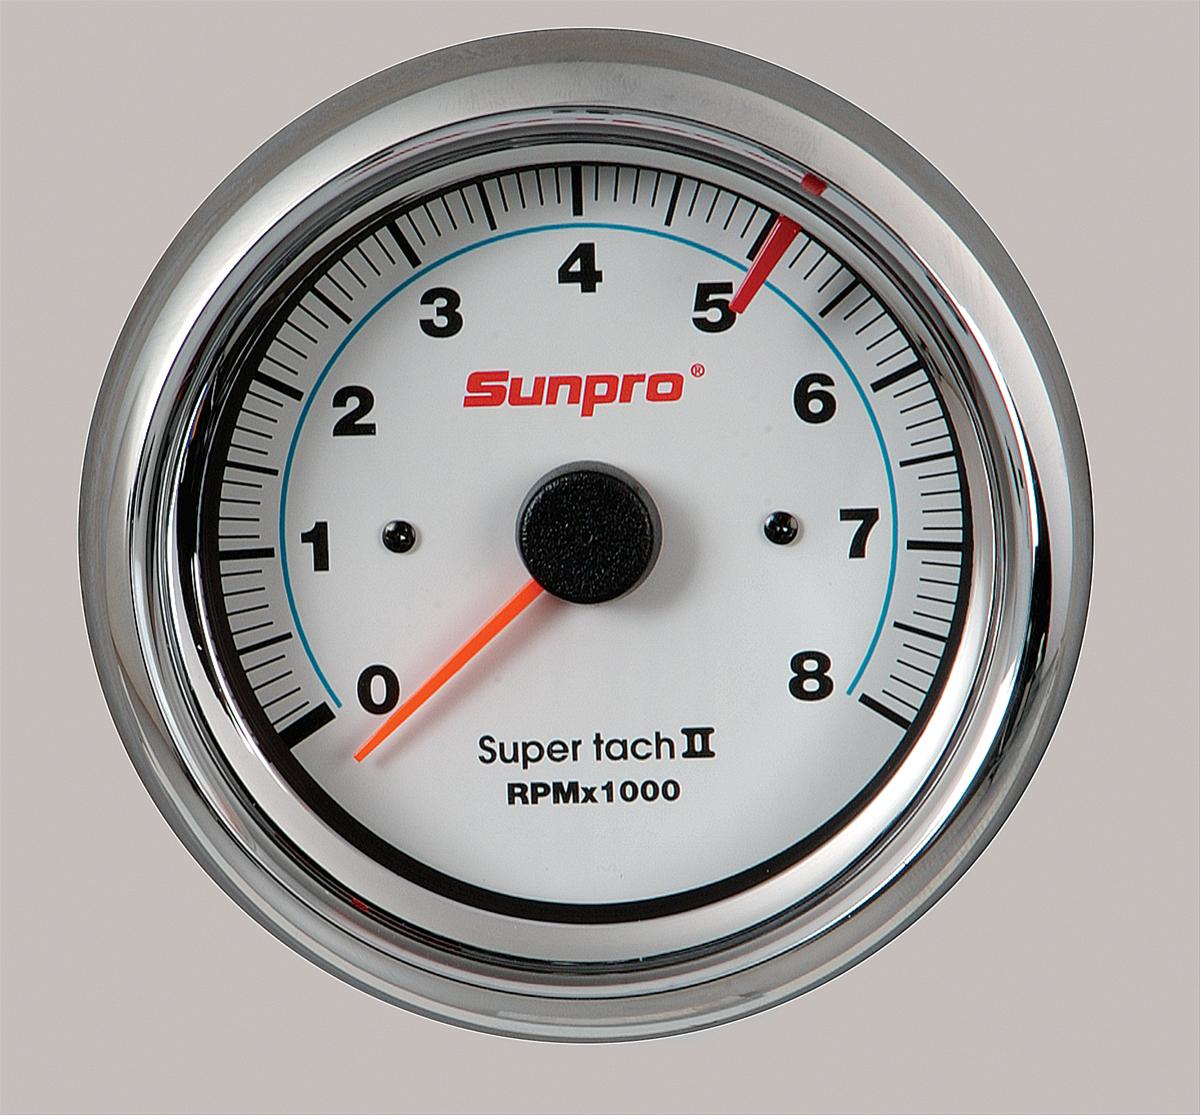 sunpro tachometer wiring diagram with Sun Cp7903 on Small Engine Mag O Coil Wiring Diagram also Maxresdefault To Faria Fuel Gauge Wiring Diagram furthermore Watch further Auto Meter Tach Wiring Diagram furthermore Auto Meter Pro  p 2 Wiring Diagram.